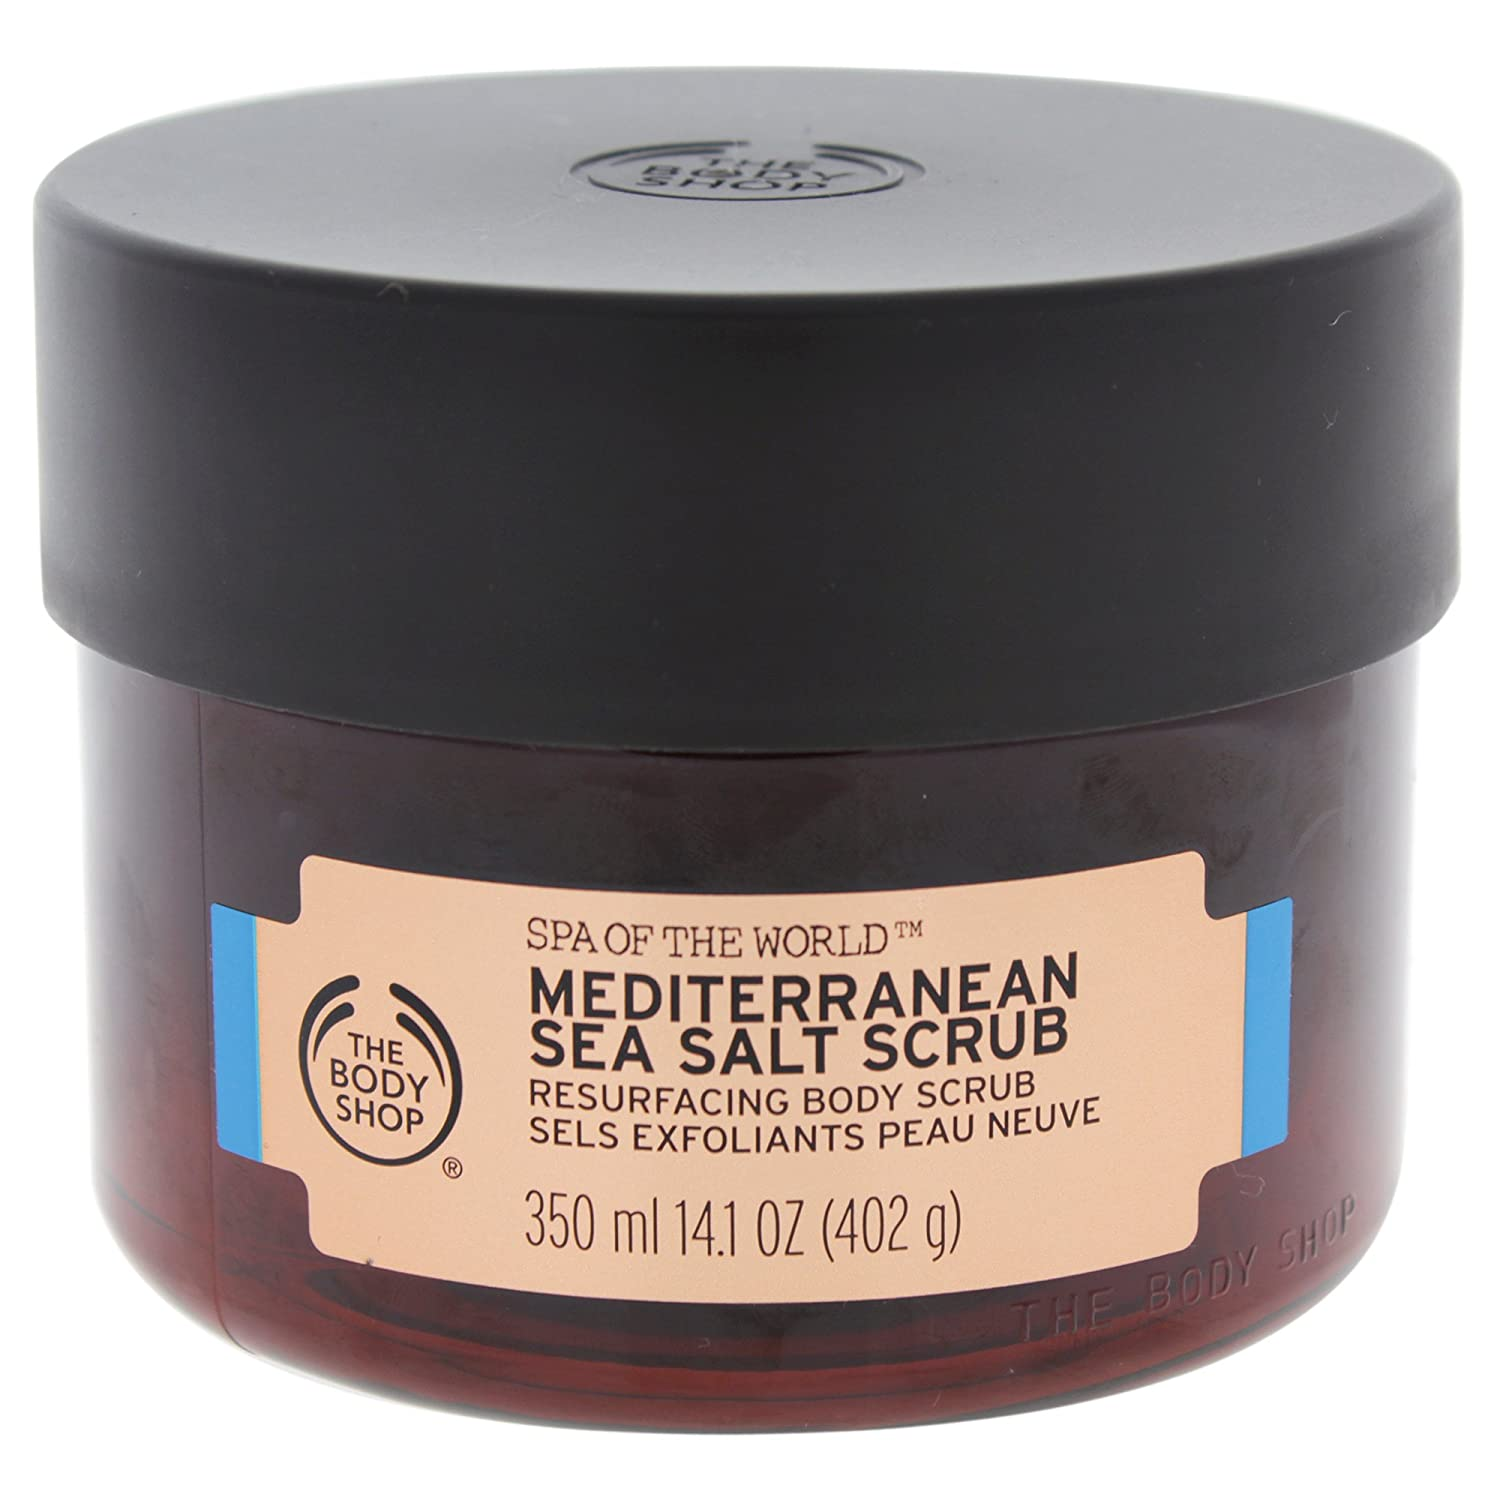 The Body Shop Spa Of The World Mediterranean Sea Salt Scrub 350ml 5028197555849